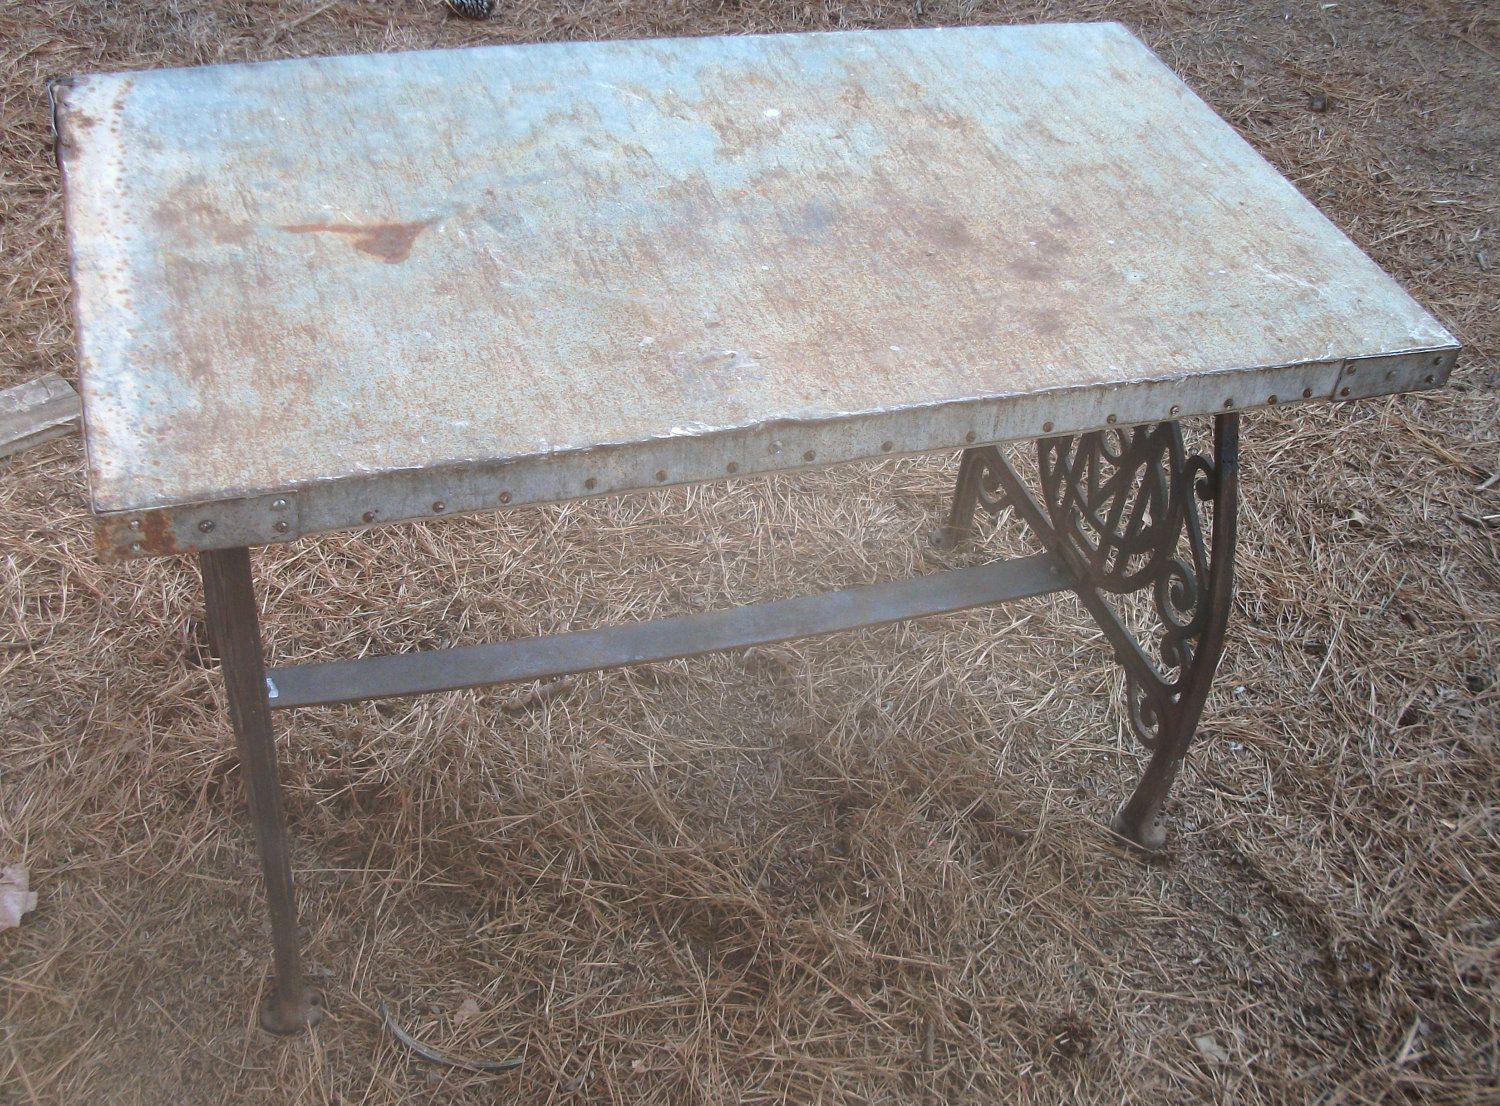 Antique Old 38 X 21 Galvanized Metal Table Top With Cast Iron Sewing Machine Legs 165 00 Via Etsy Metal Table Top Rustic Furniture Galvanized Metal